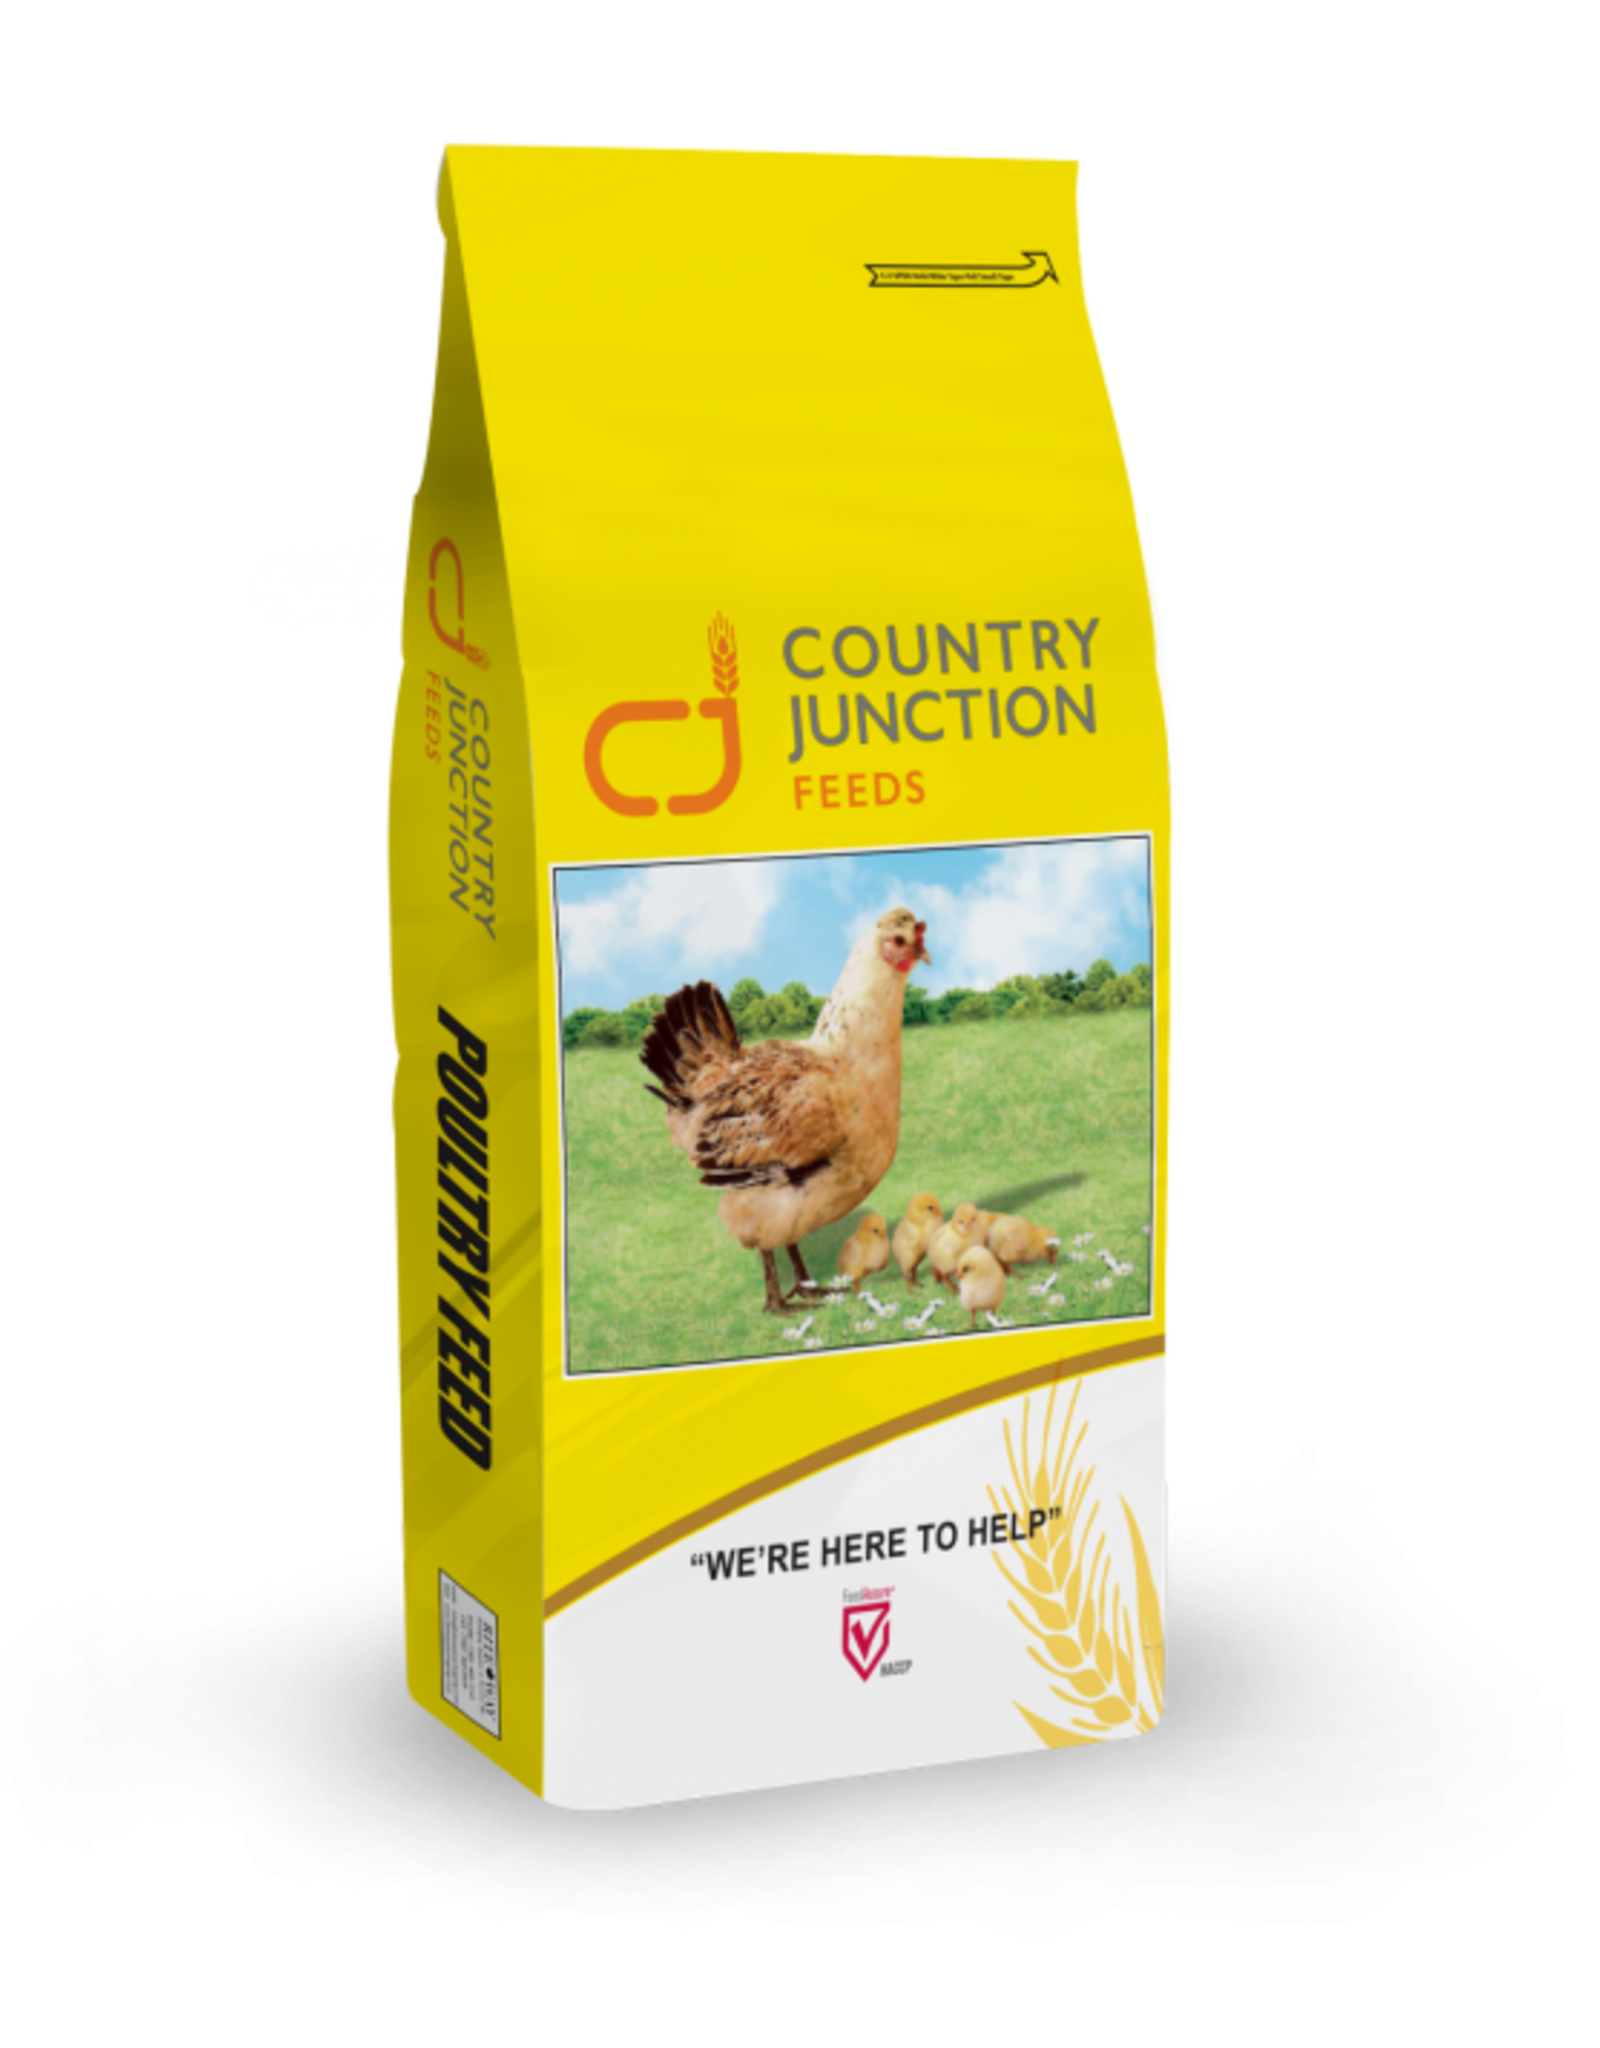 Country Junction Feeds 16% Poultry Grower 20kg